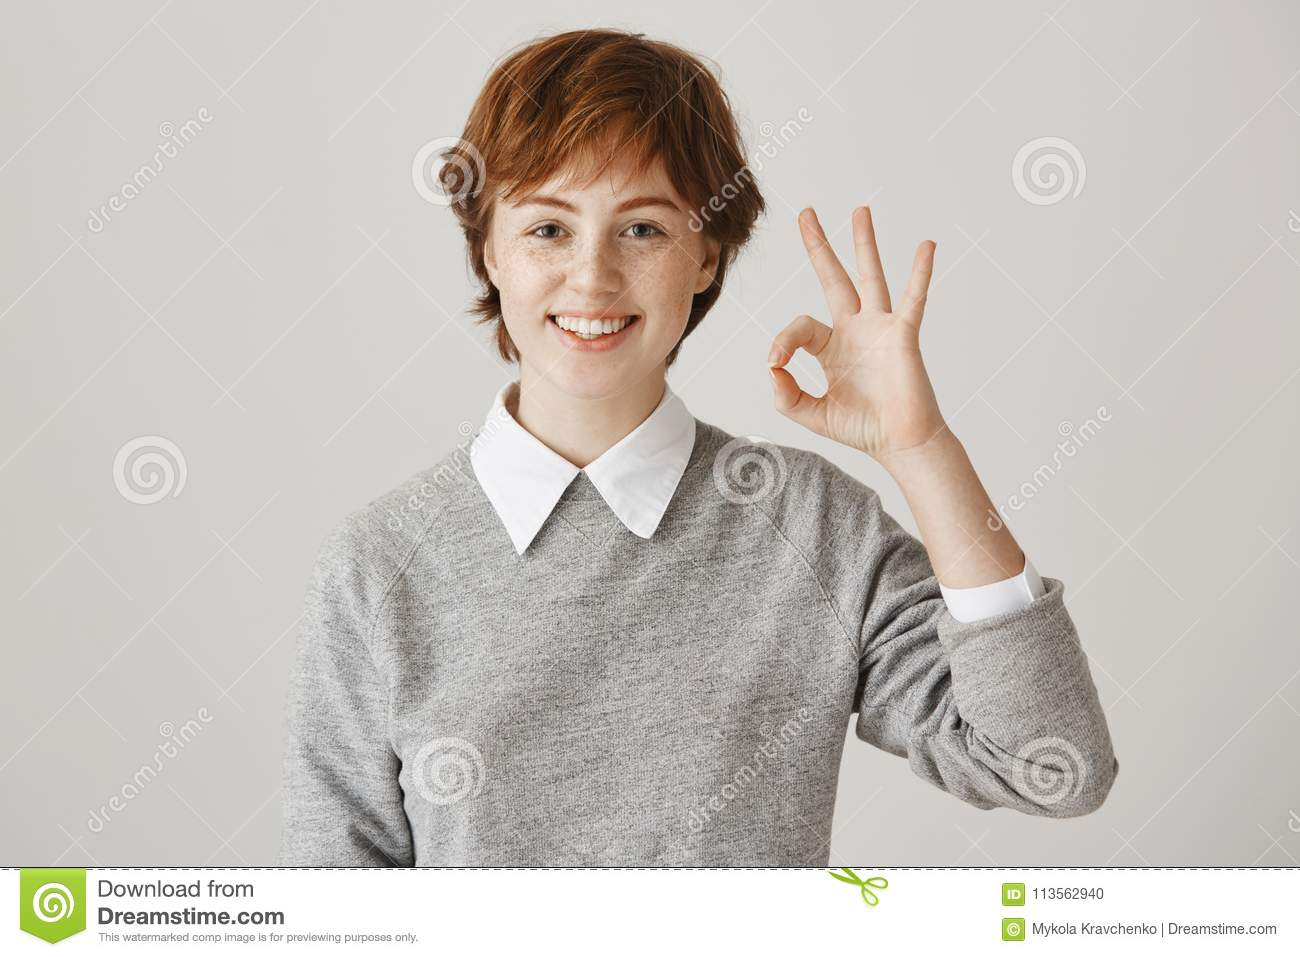 Positive Emotions Concept Charismatic Boyish Redhead Girl With